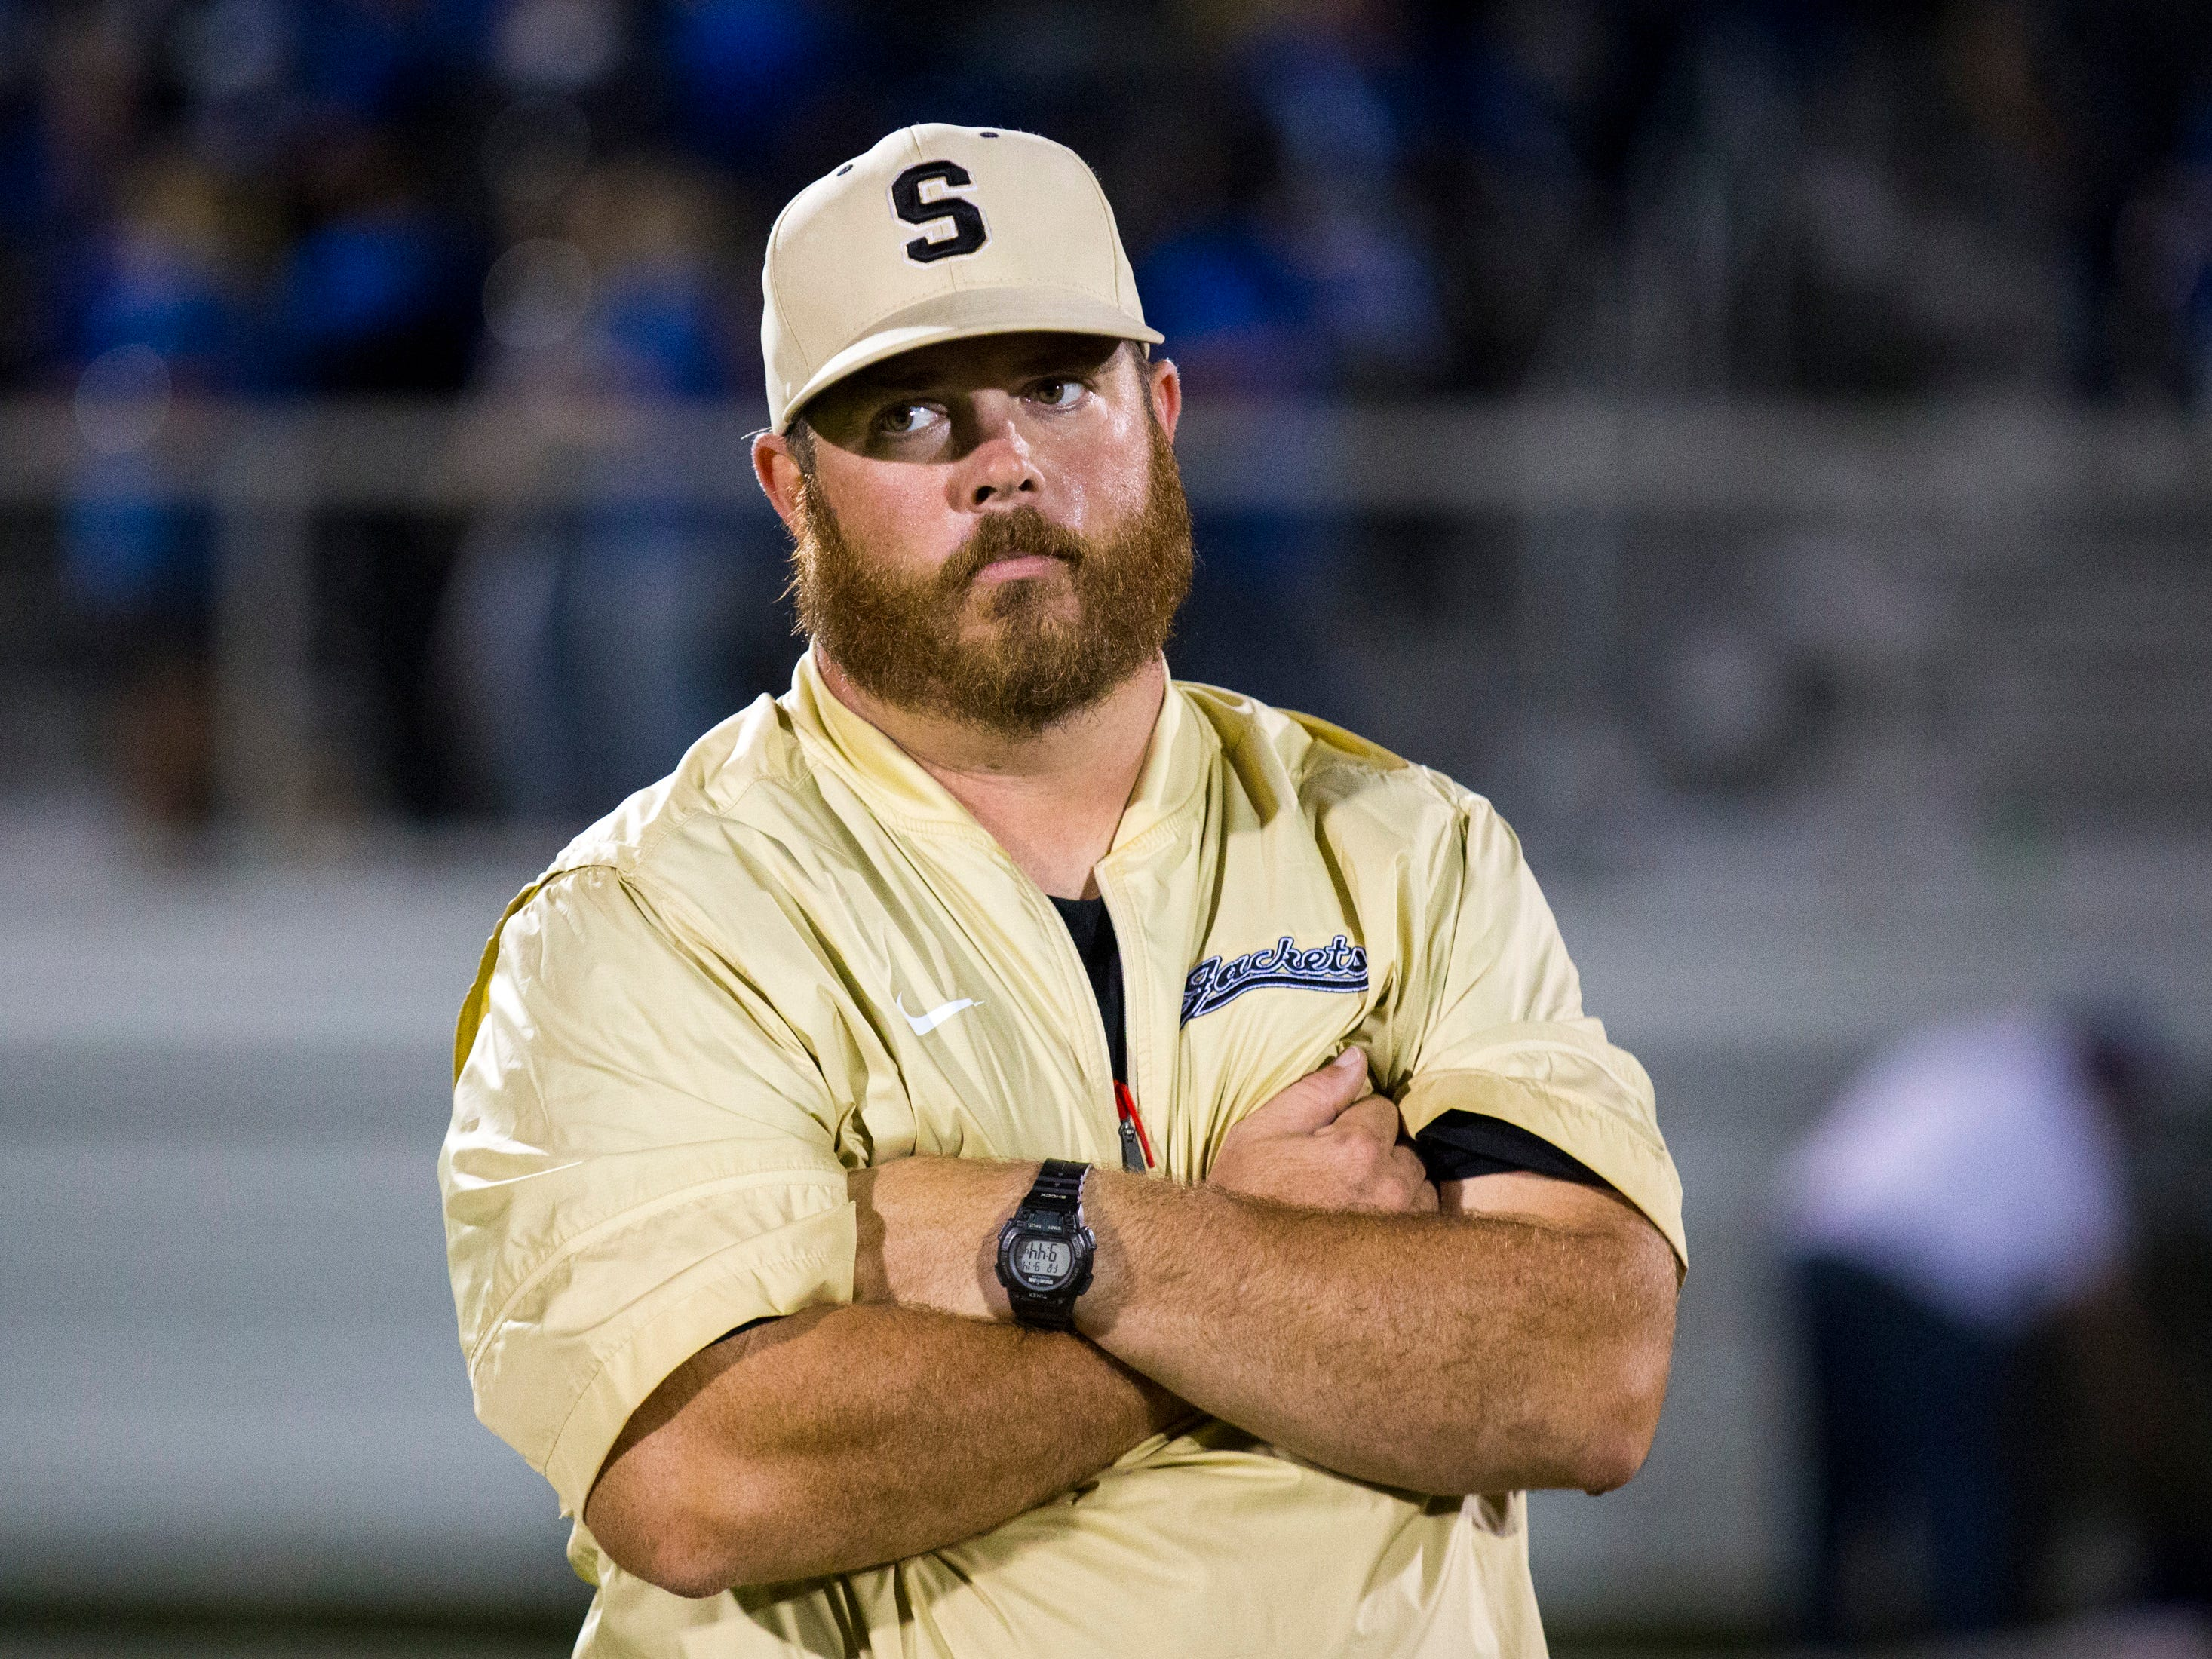 Springfield's head coach Dustin Wilson after Springfield's game against White House at Springfield High School in Springfield on Friday, Sept. 14, 2018.